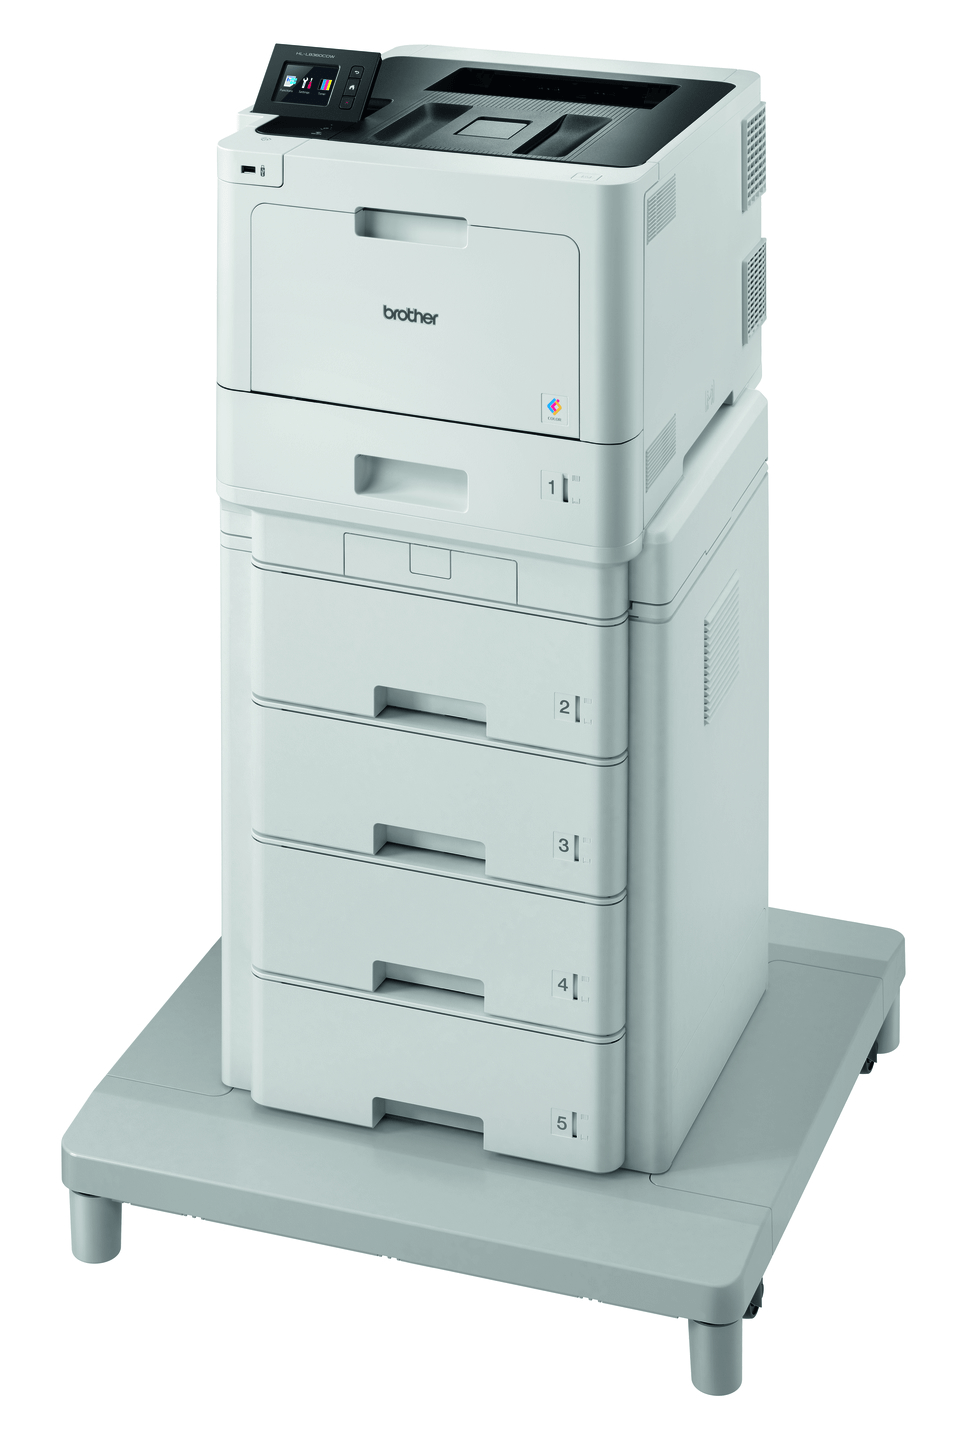 HL-L8360CDWMT - Professional Colour Laser Printer + Tower Tray + Tower Tray Connector 2